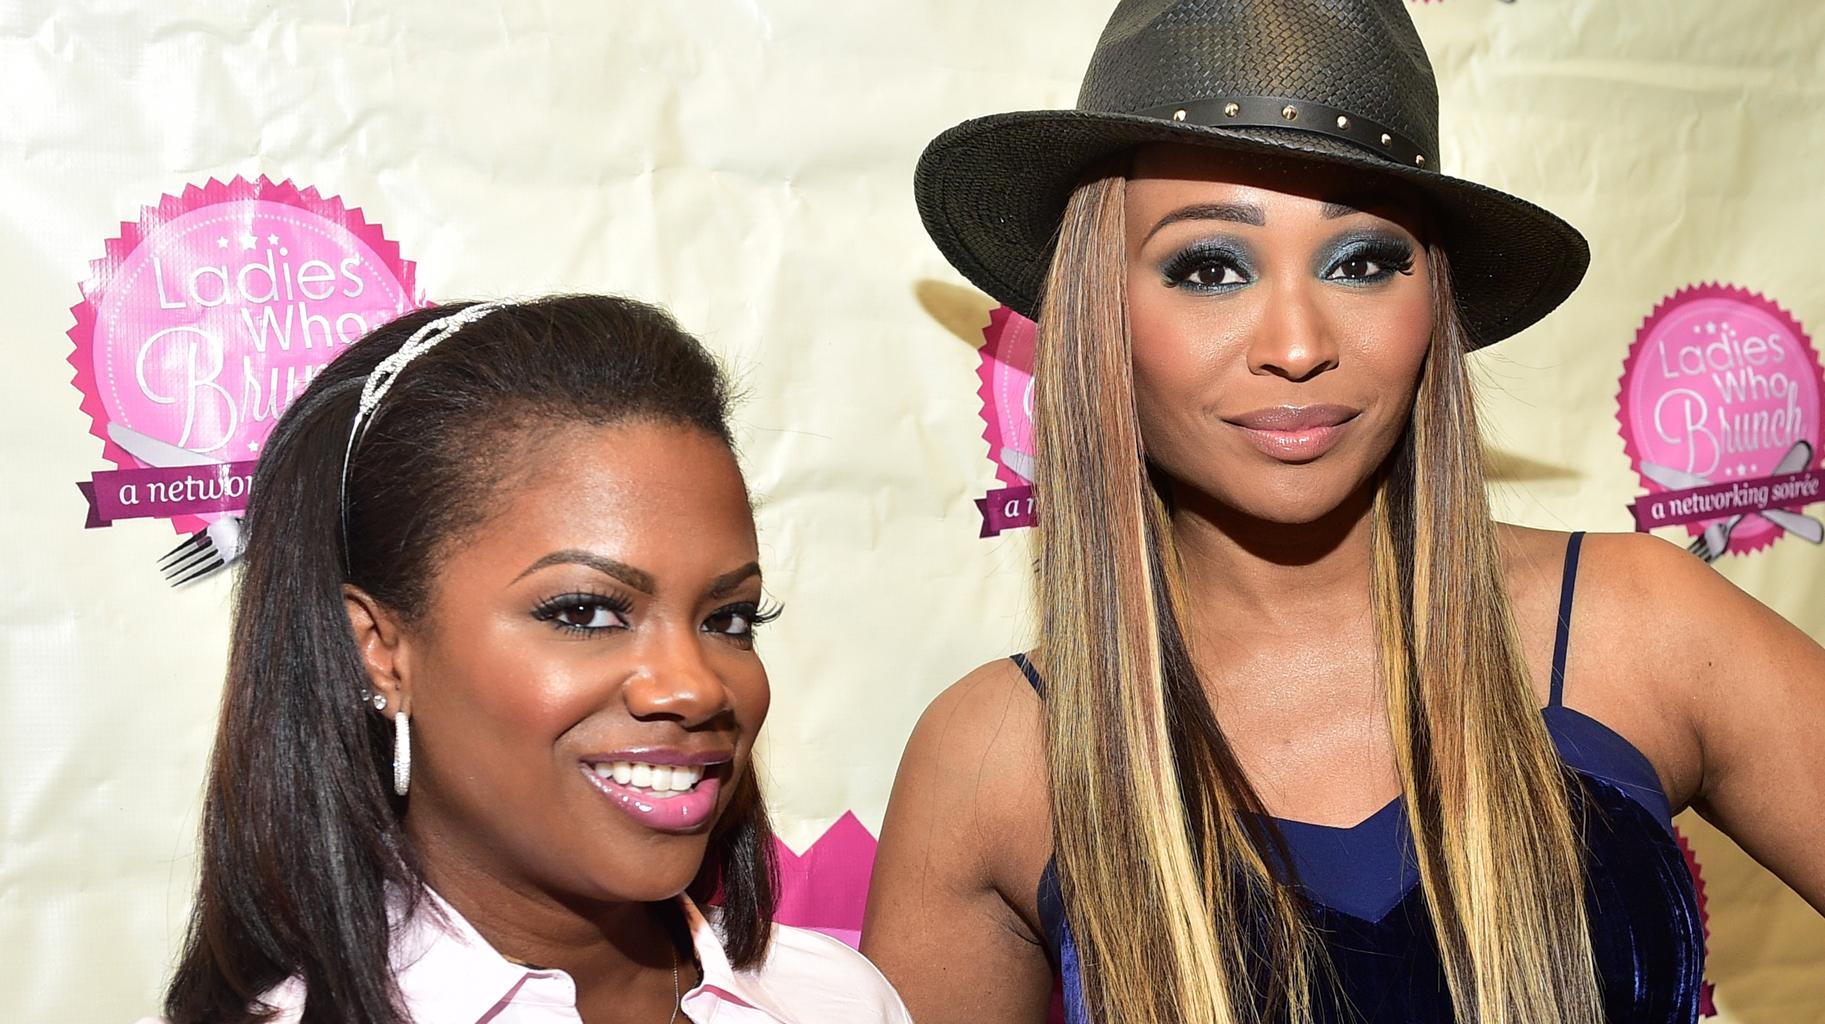 Cynthia Bailey Tells Kandi Burruss That She Wants To Be Like Her 'When She Grows Up'